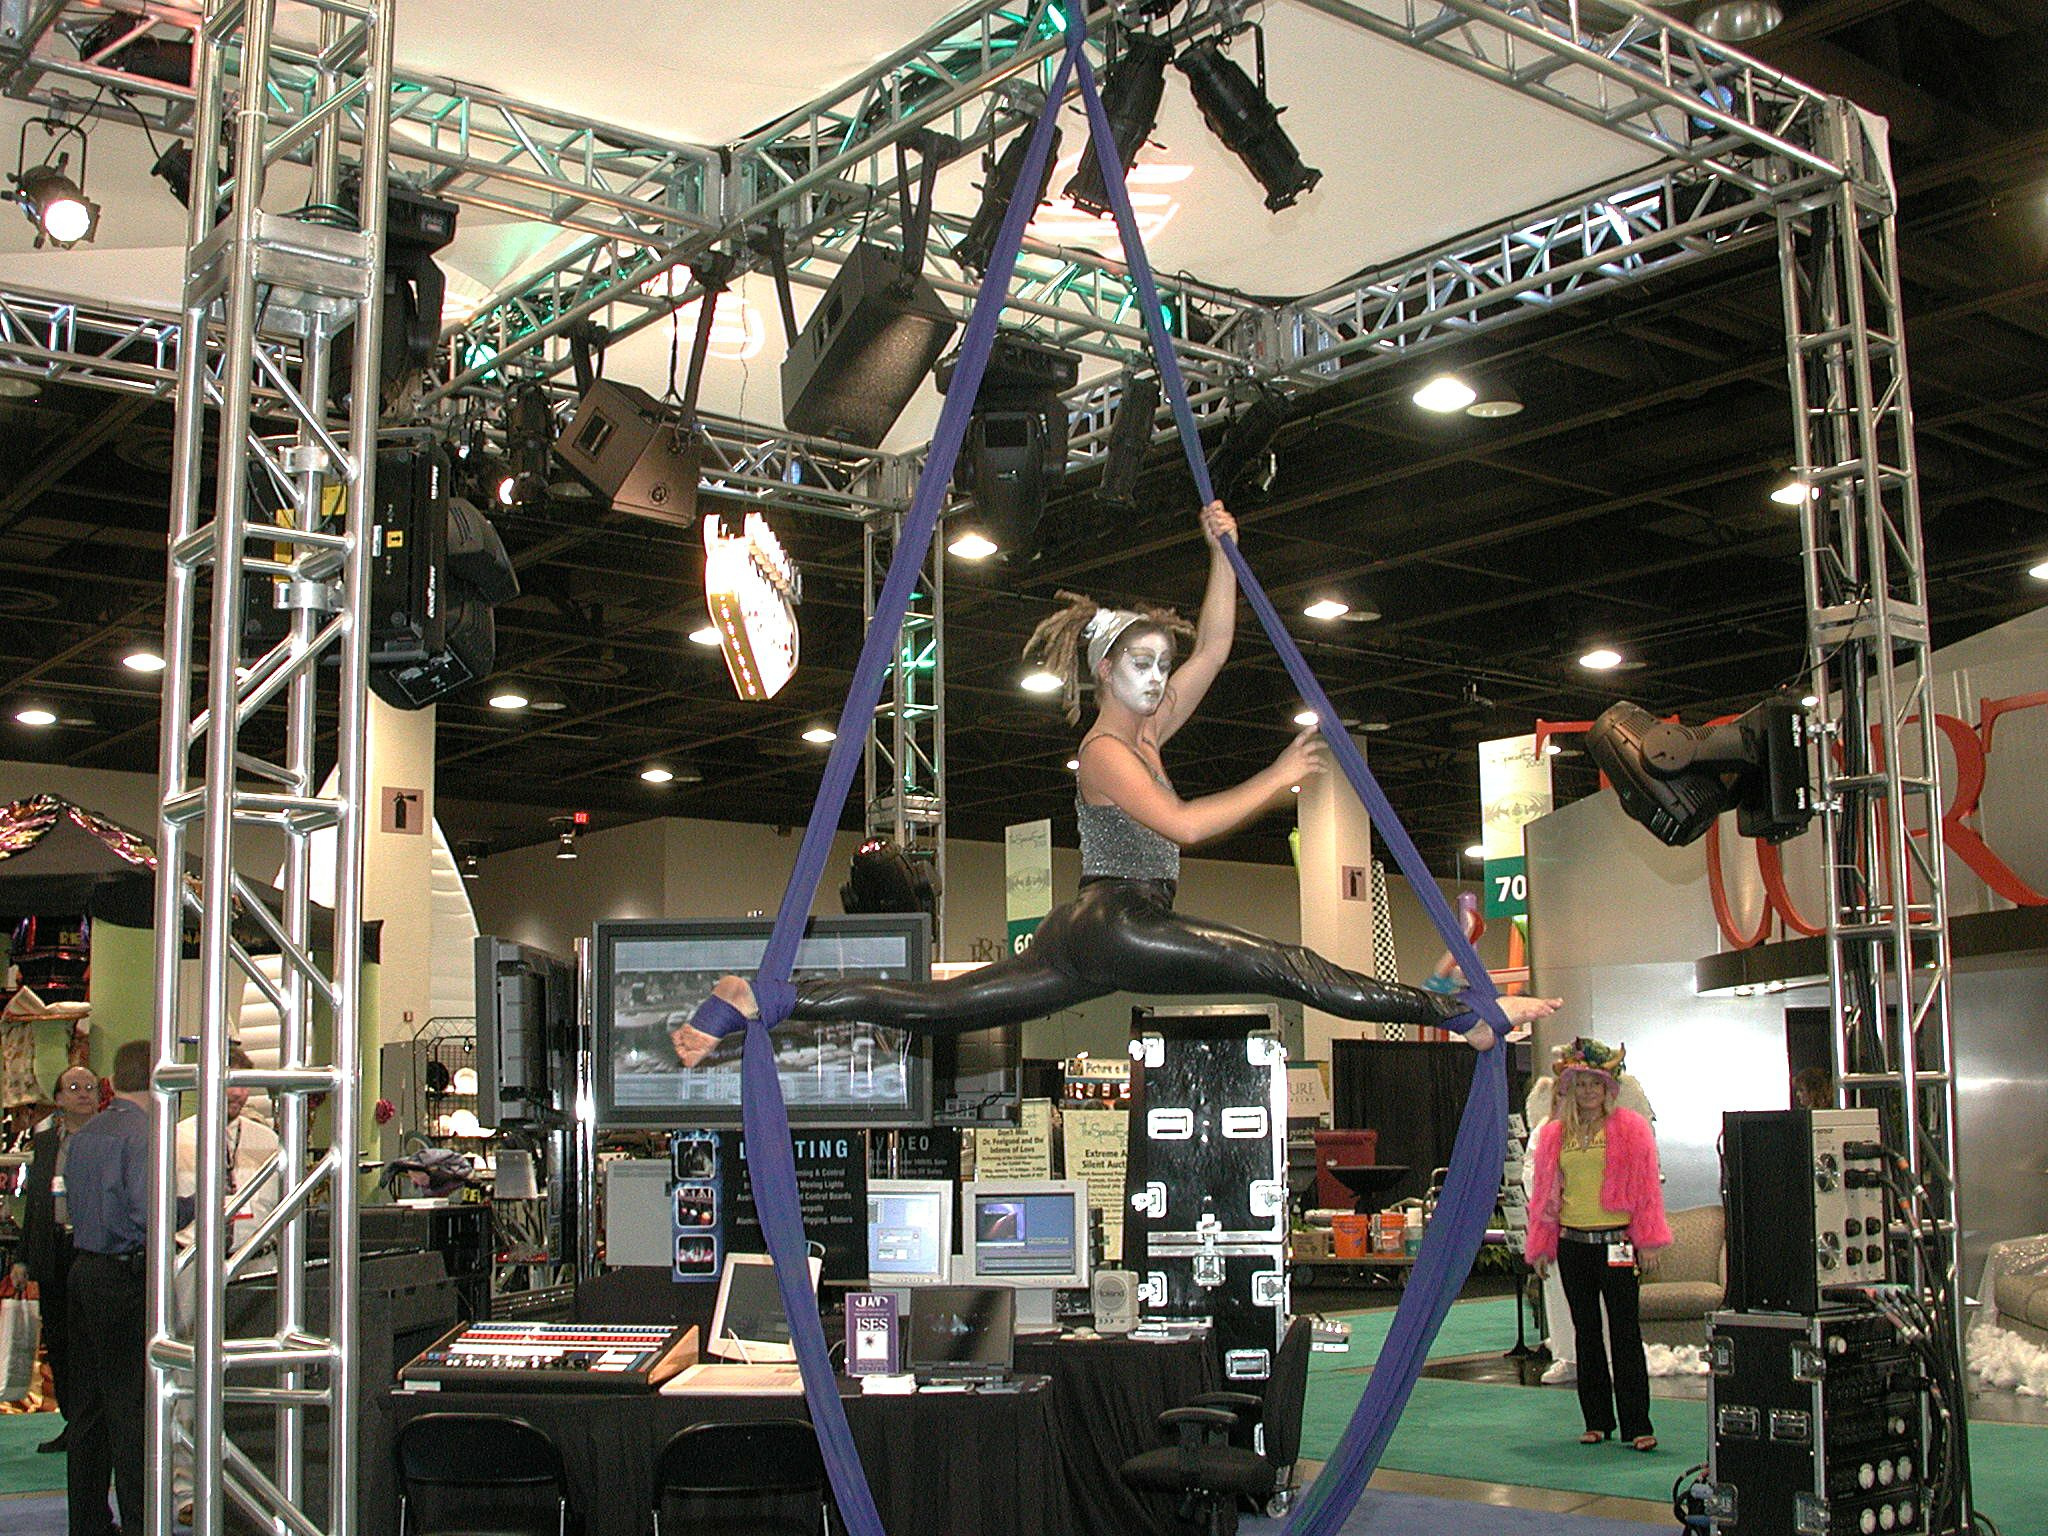 Arial acrobatics on the tradeshow floor